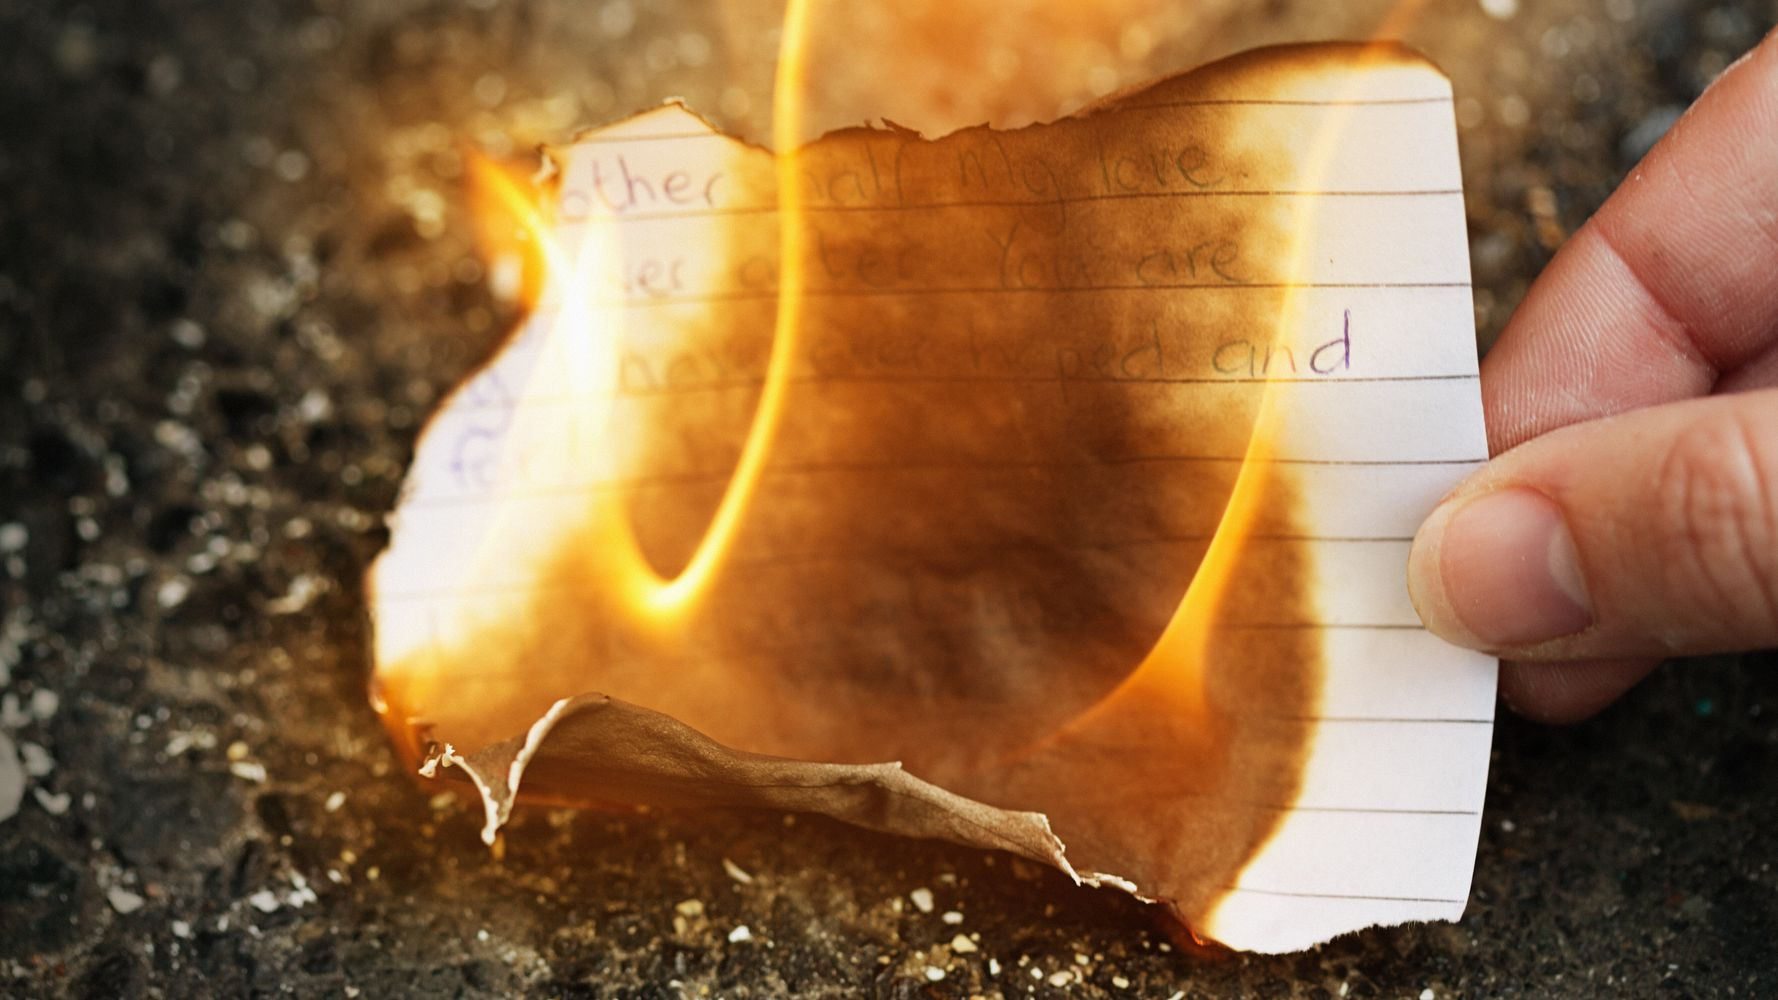 Woman Sparks Apartment Fire By Burning Love Letters | HuffPost